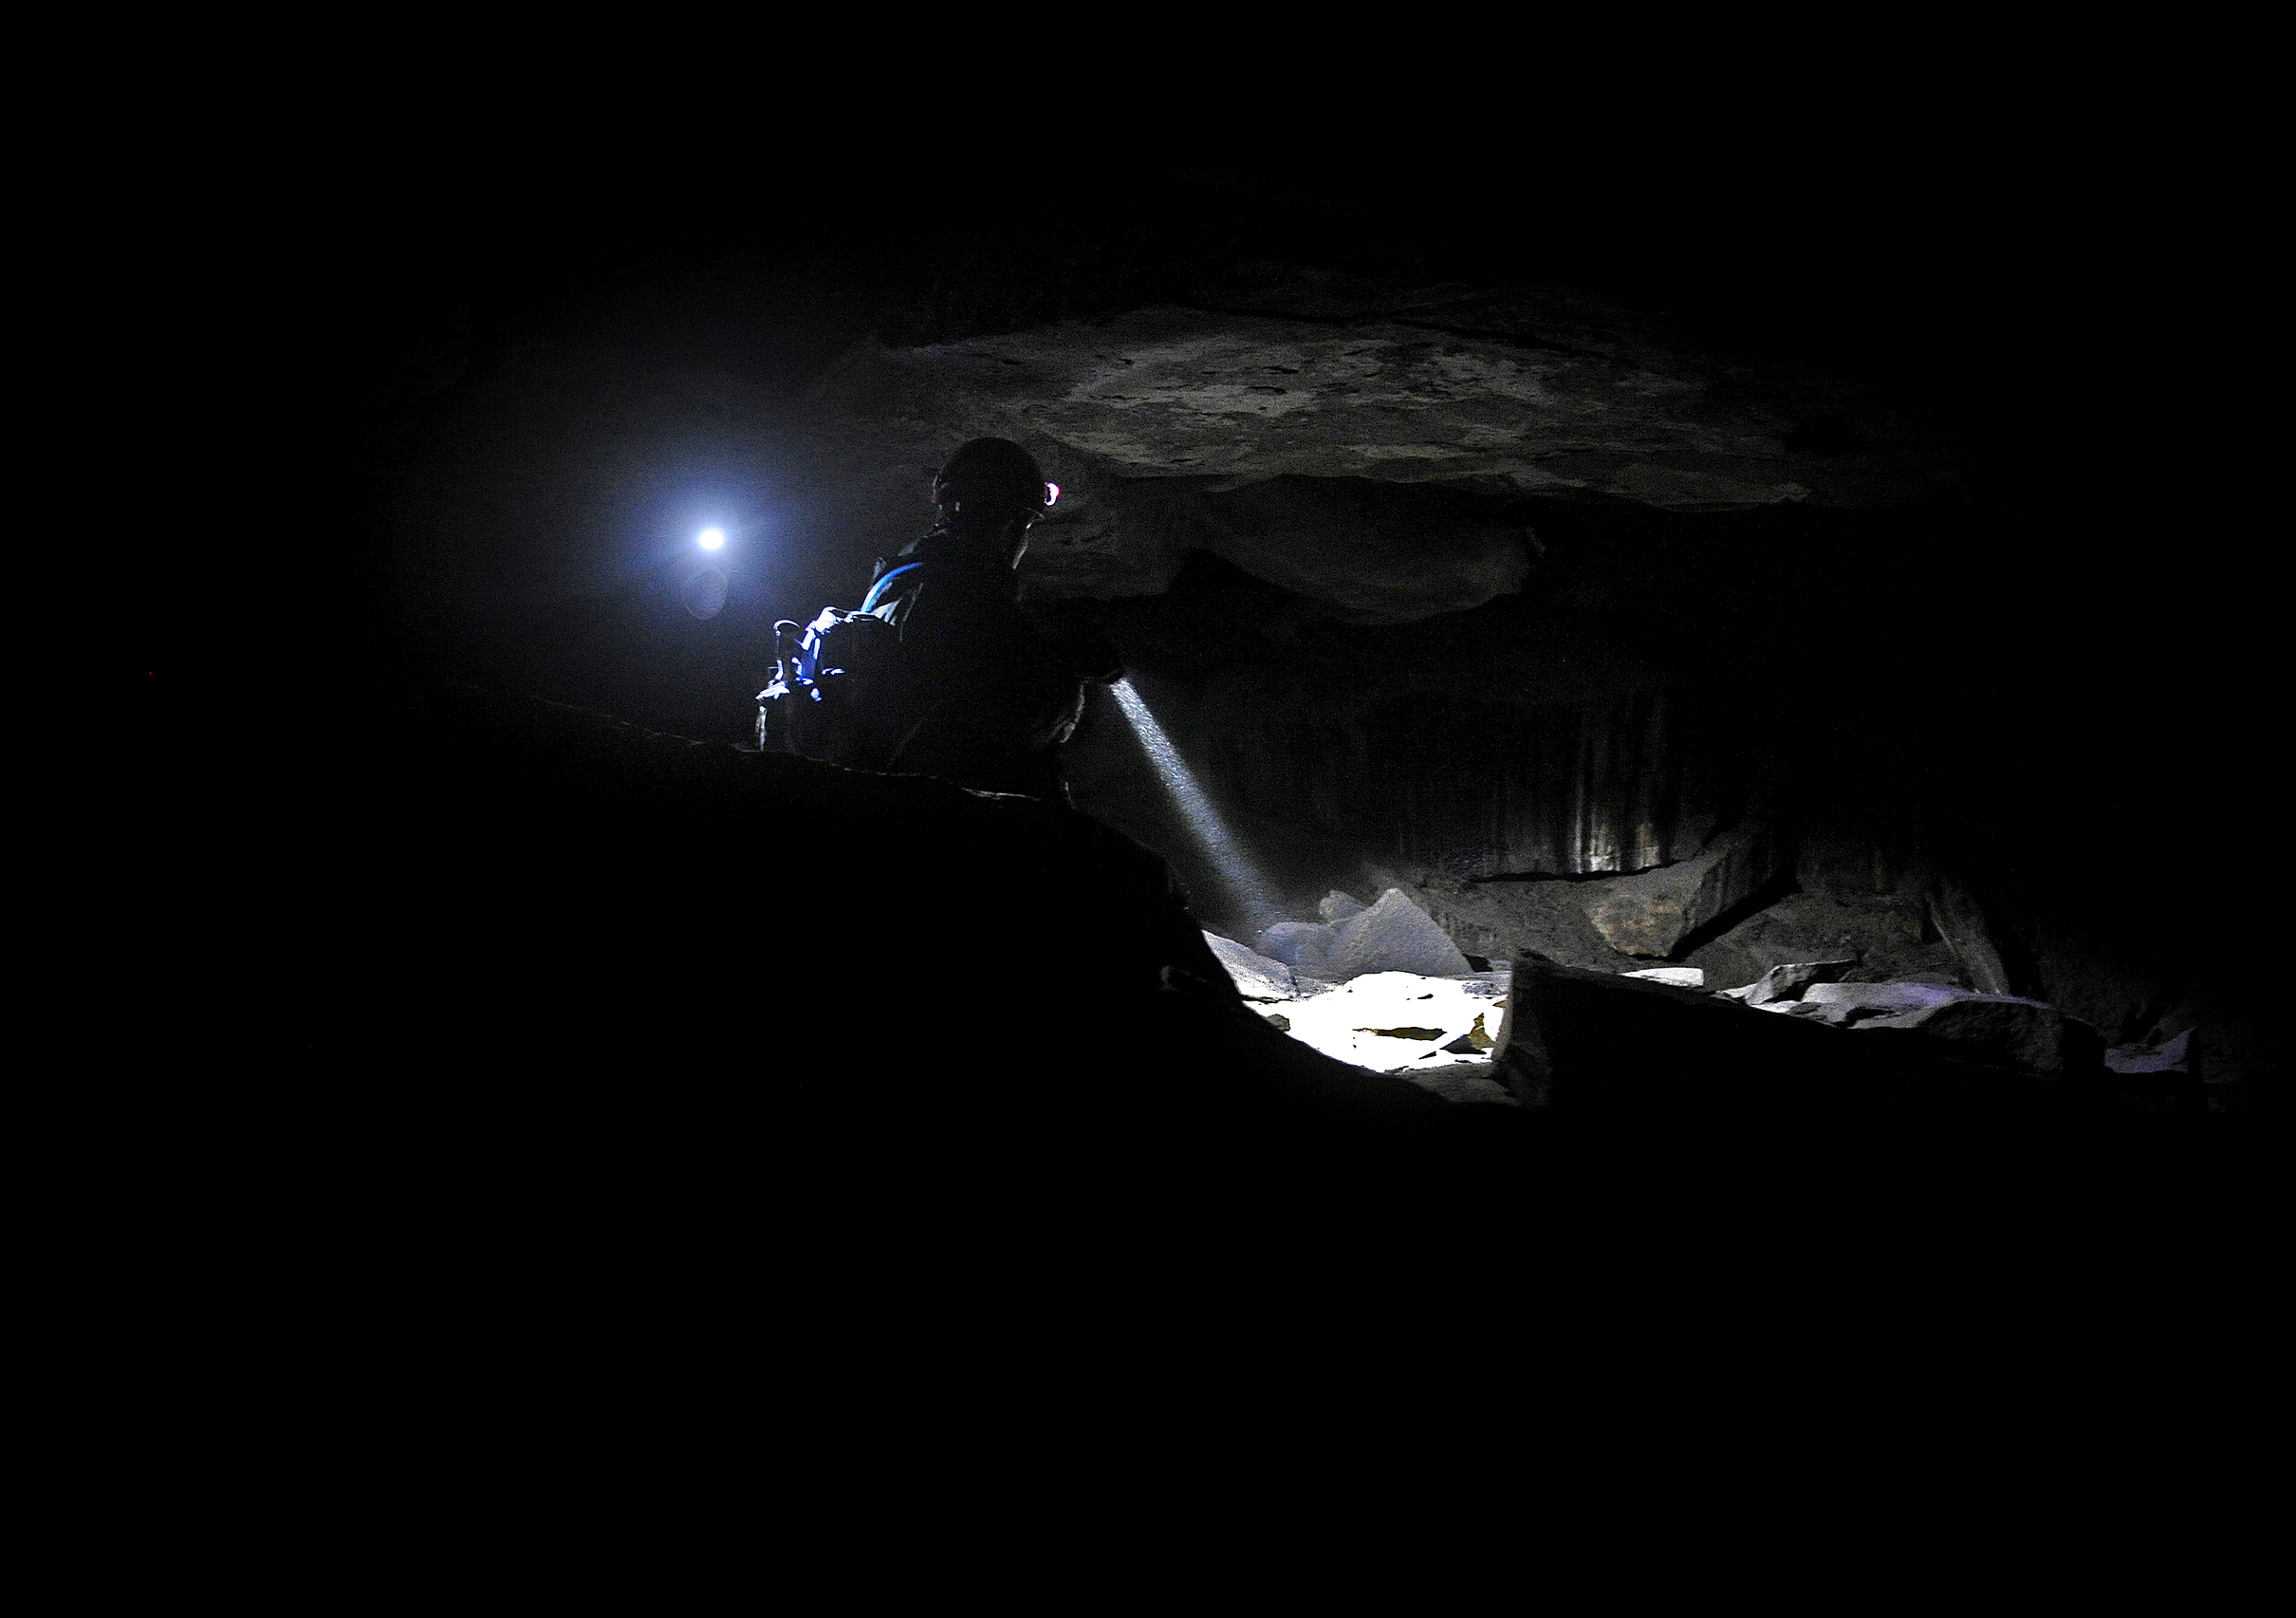 Eli Taysom, a first year graduate student studying biological anthropology, and Daria Van Dolsen, a graduate student studying anthropology, search the back of the cave for any locations the head could have been hidden. Because of the rough rock formations and hidden crevices, Clark County Sheriff's Department was unable to hang lights this far back in the cave, leaving the search to Taysom and Dolsen's helmet lights.